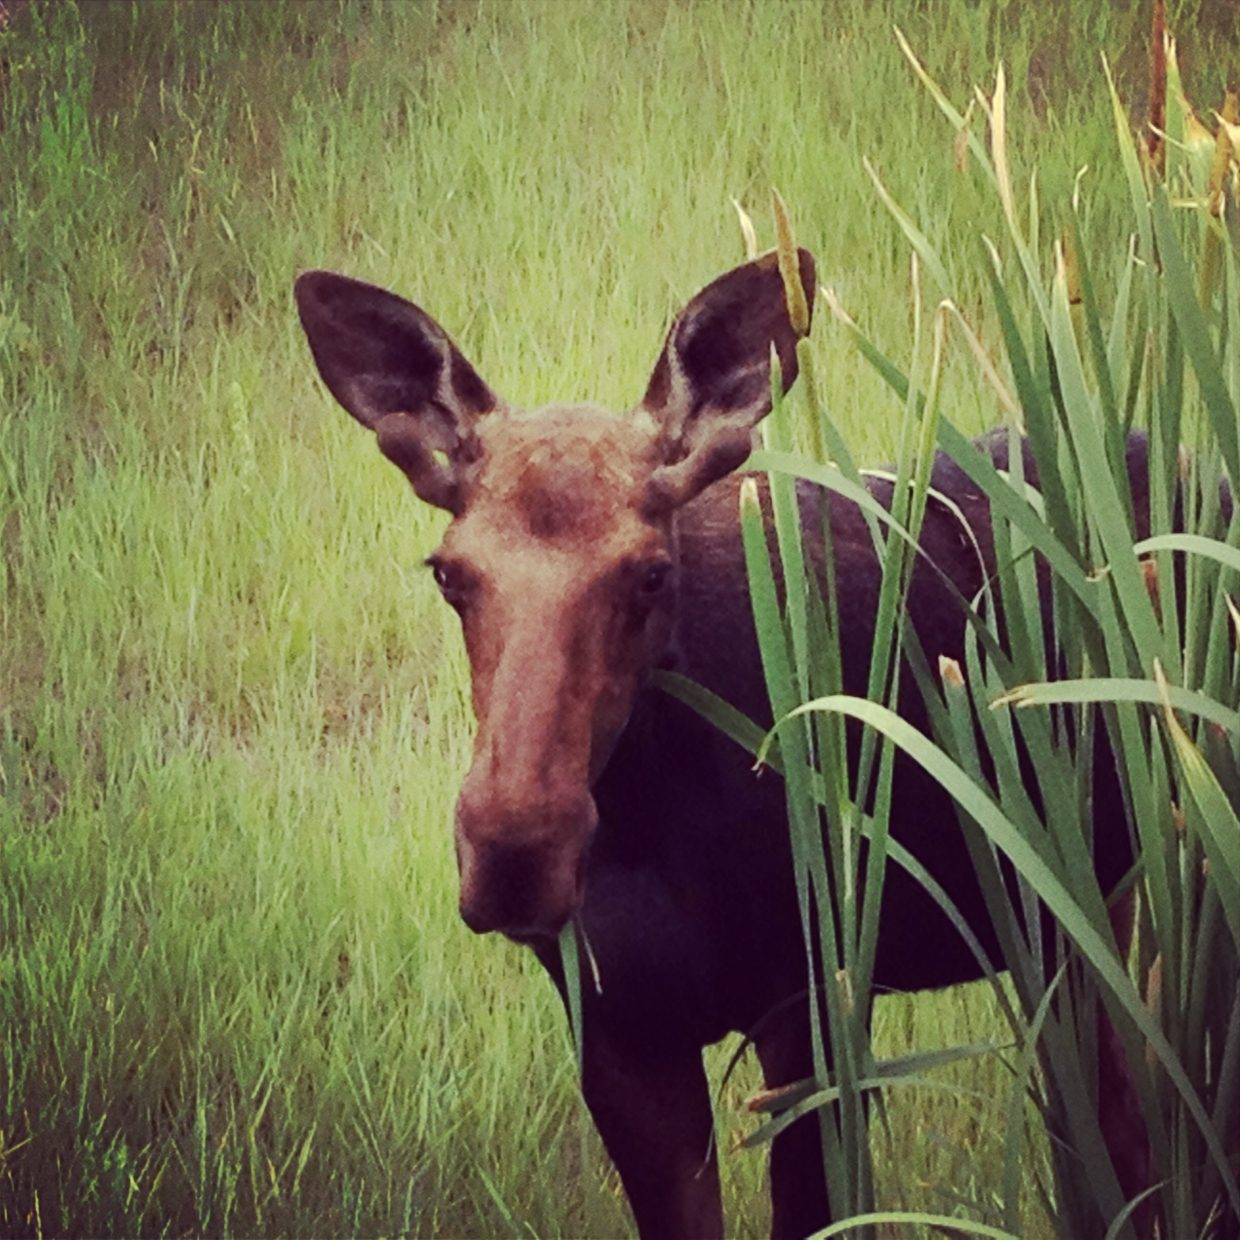 Moose on the loose! Submitted by: Tiffany Floss